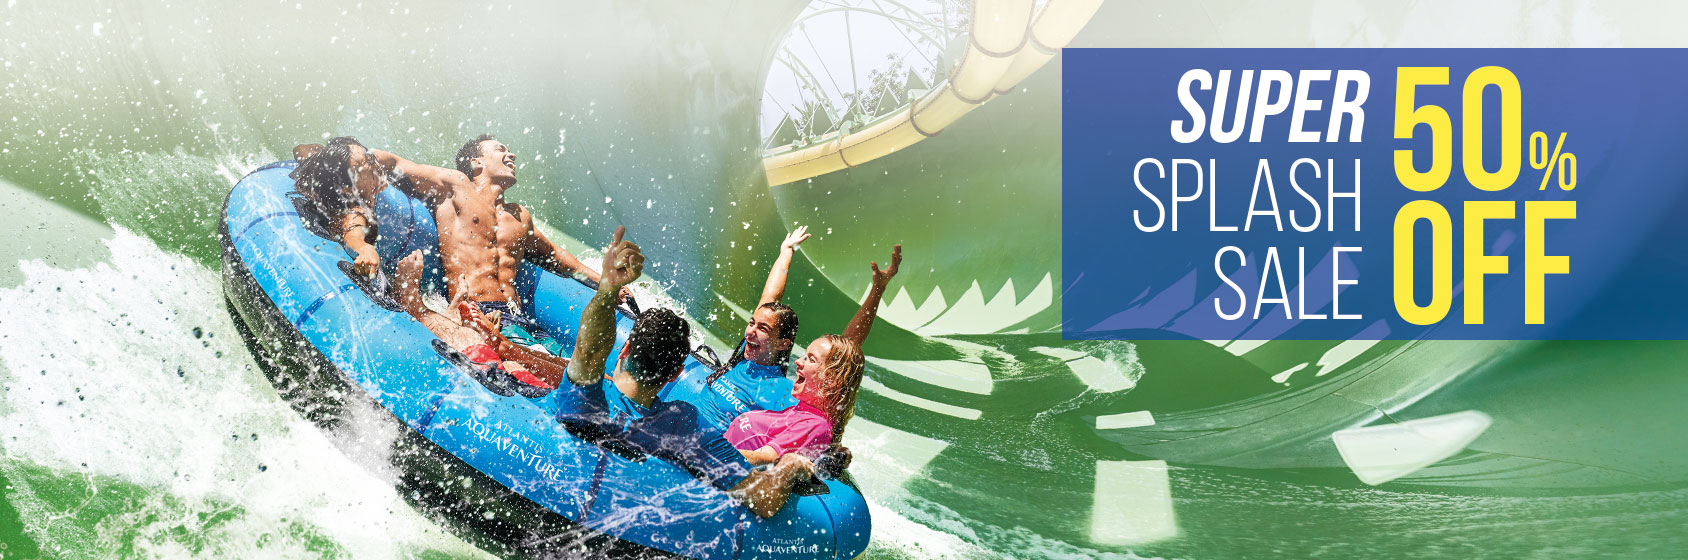 Stellar Splash Sale Offer! Get Your Ticket to Aquaventure Bucket List Experiences!